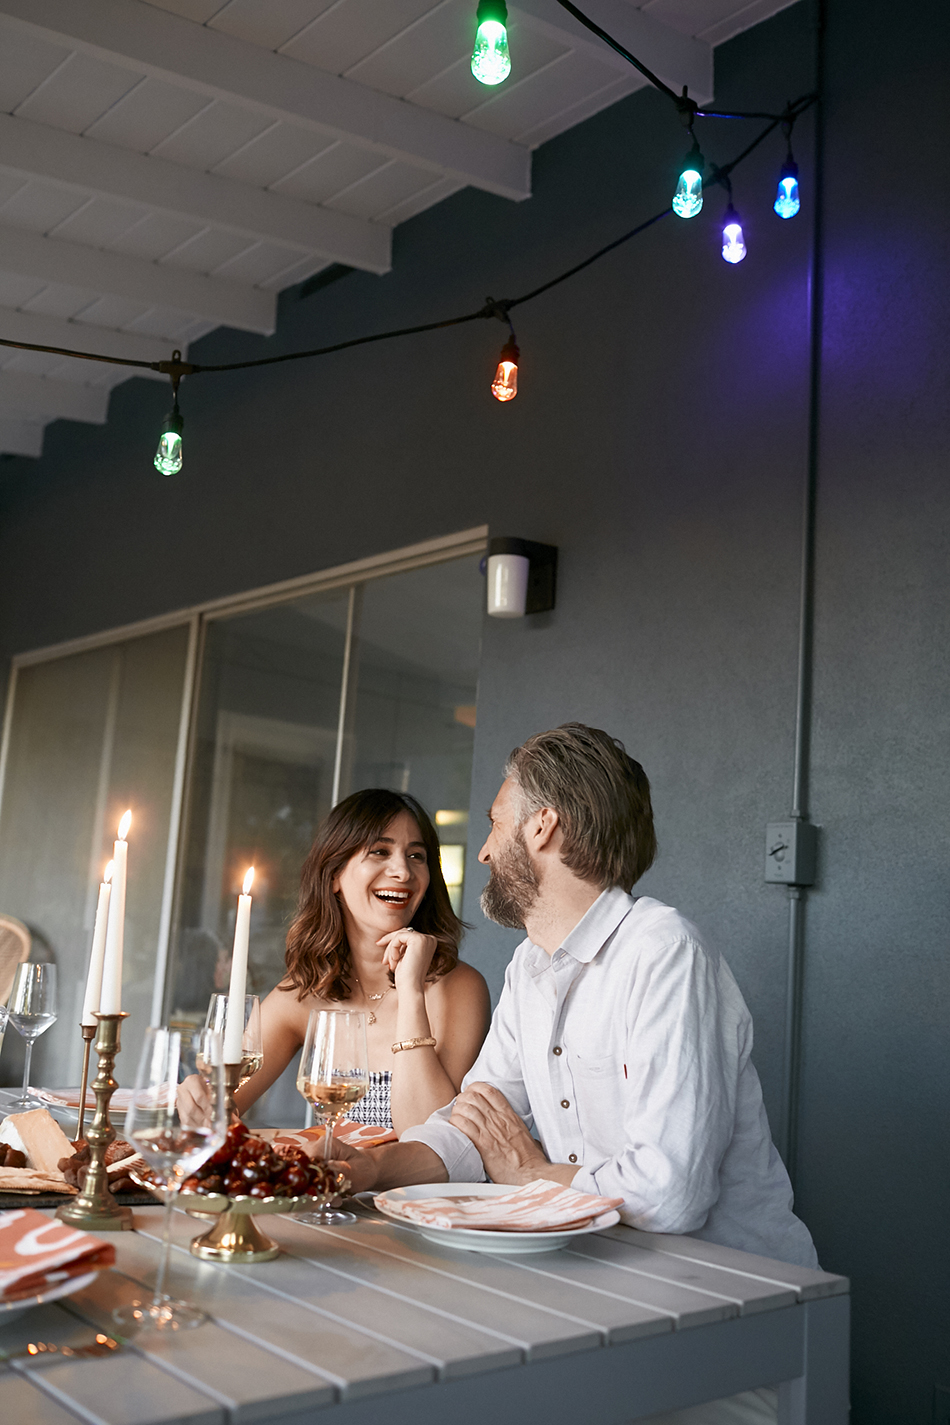 Outdoor Entertaining How To Plan The Perfect Dinner Party